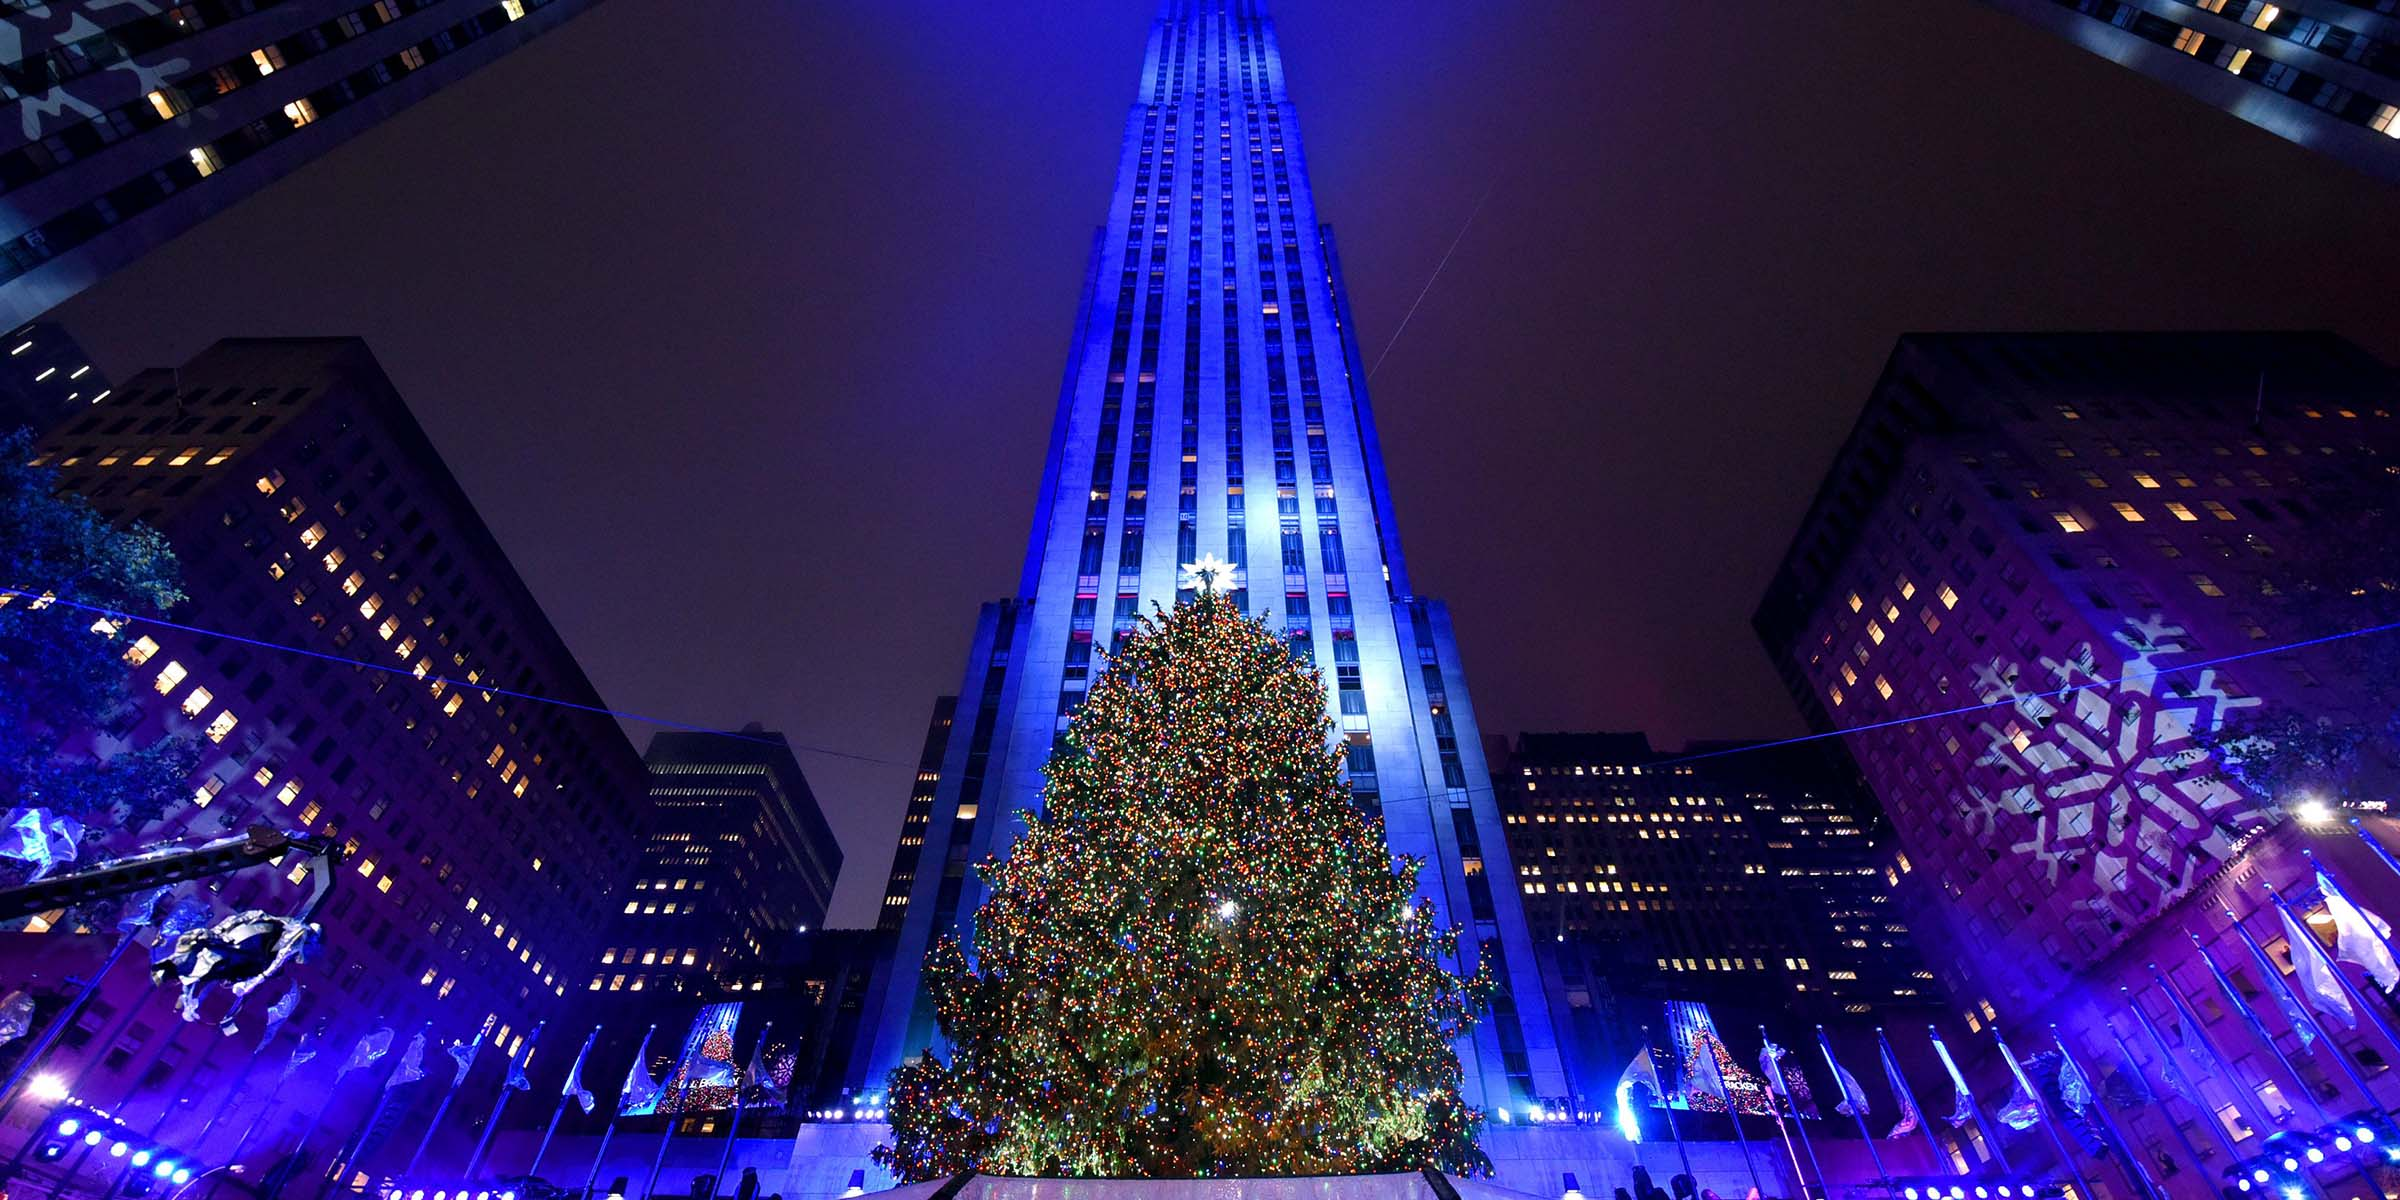 Nbc Christmas Tree Lighting 2020 Performers Rockefeller Tree Lighting 2019: How to watch, who is performing & more